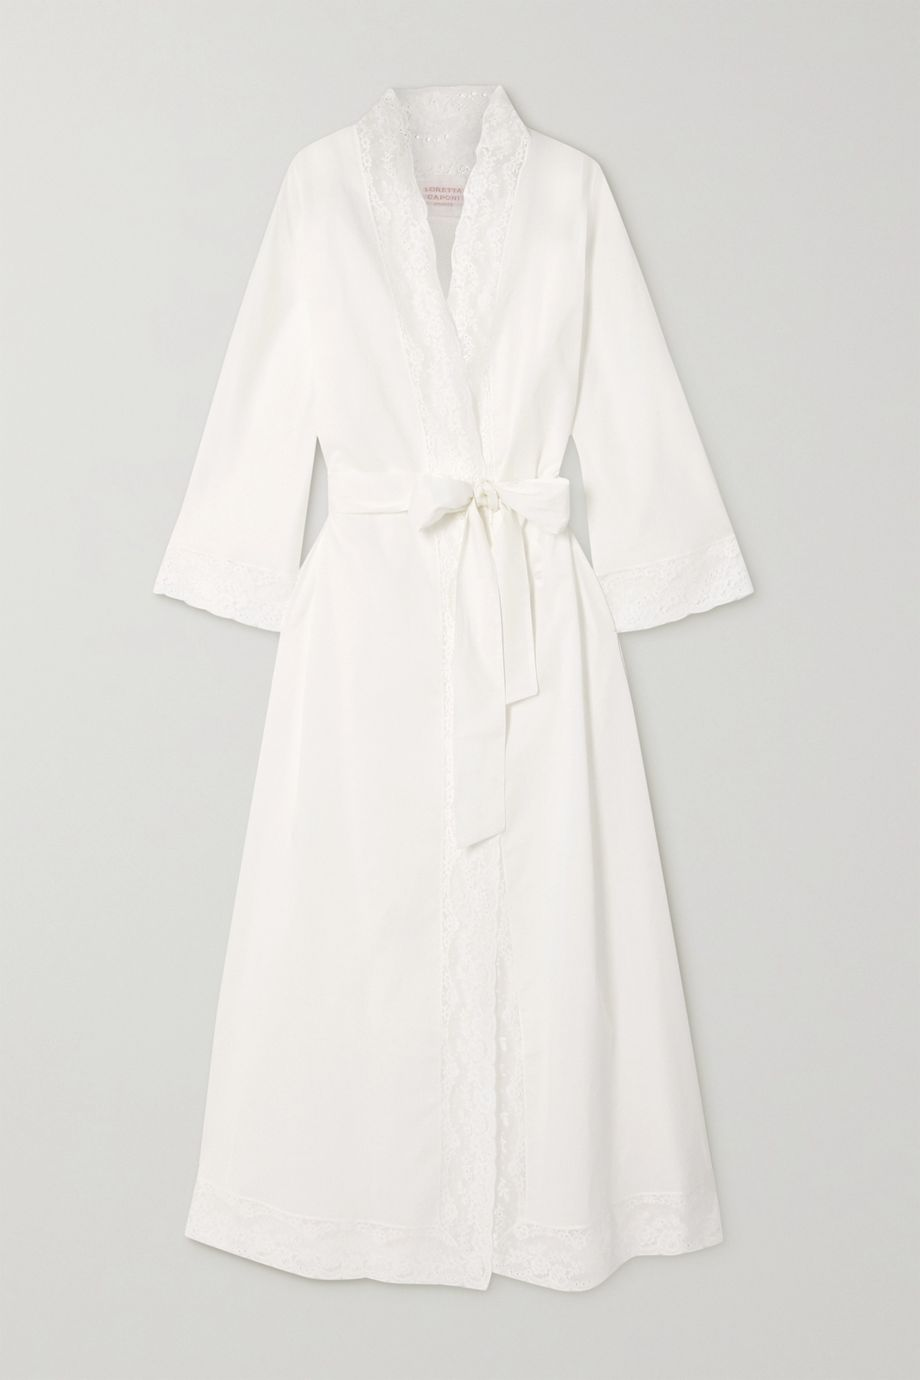 Loretta Caponi Lace-trimmed cotton-voile robe